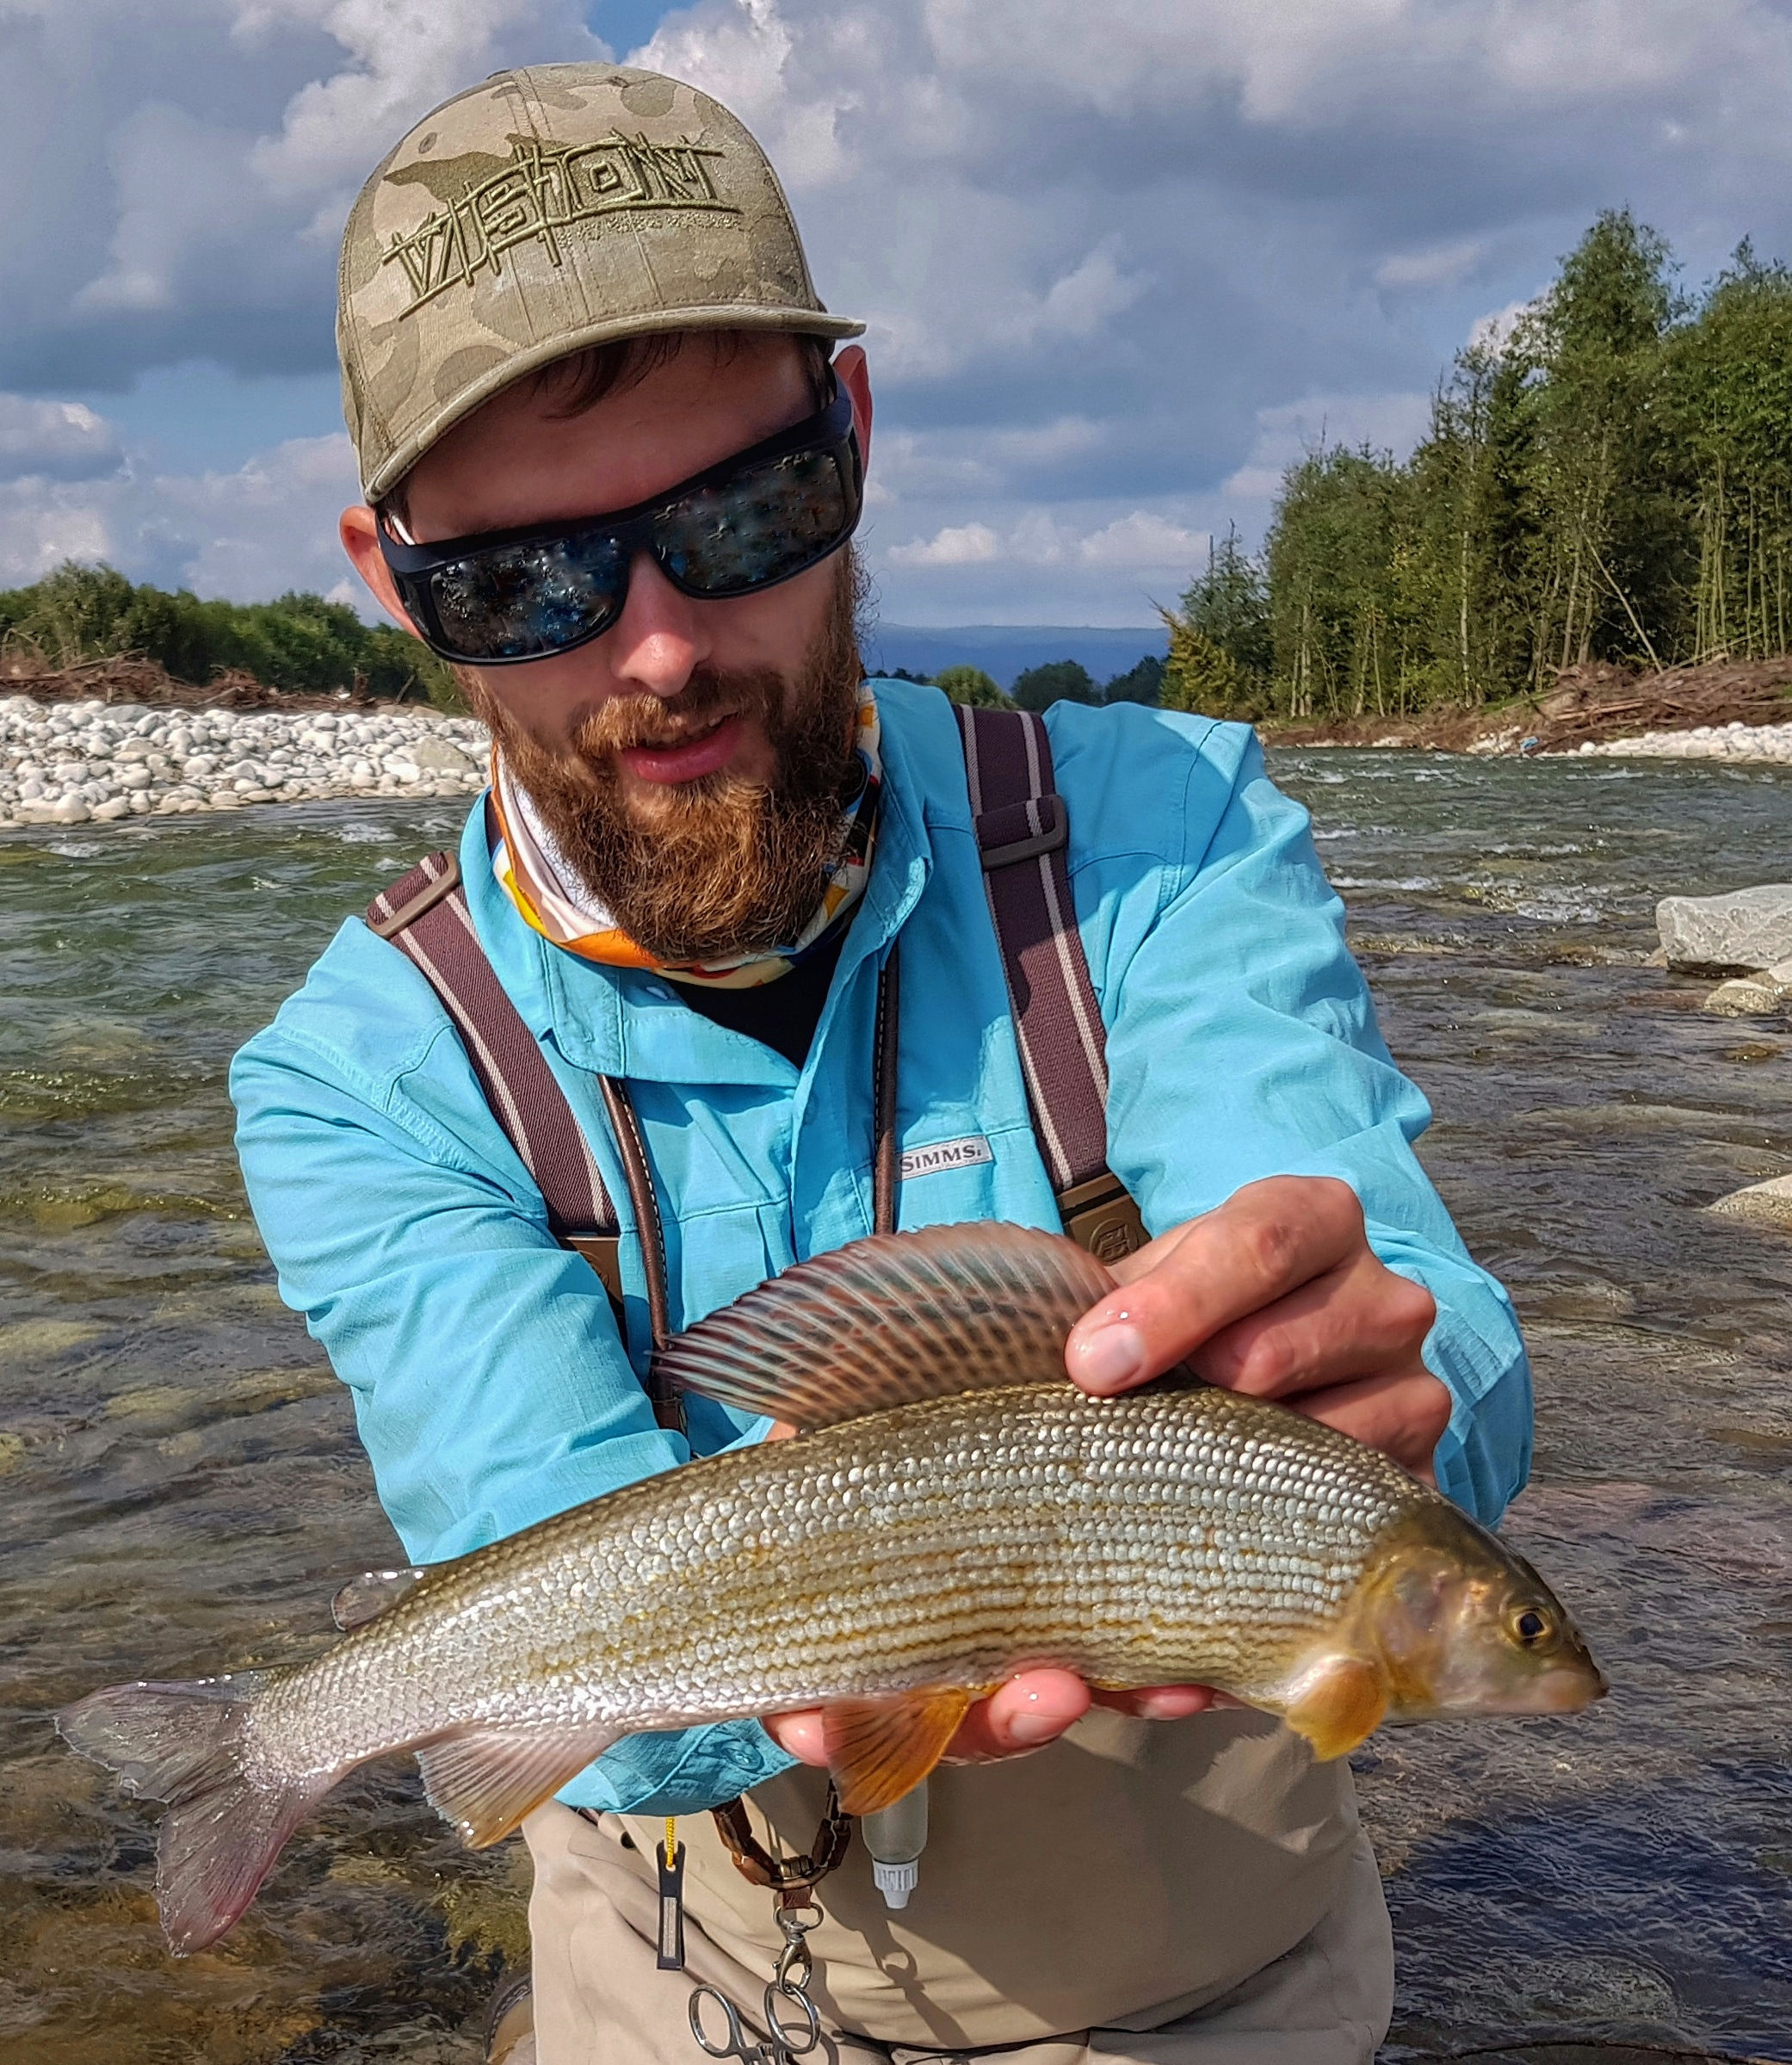 Wild Grayling and brown trouts from Bialka River